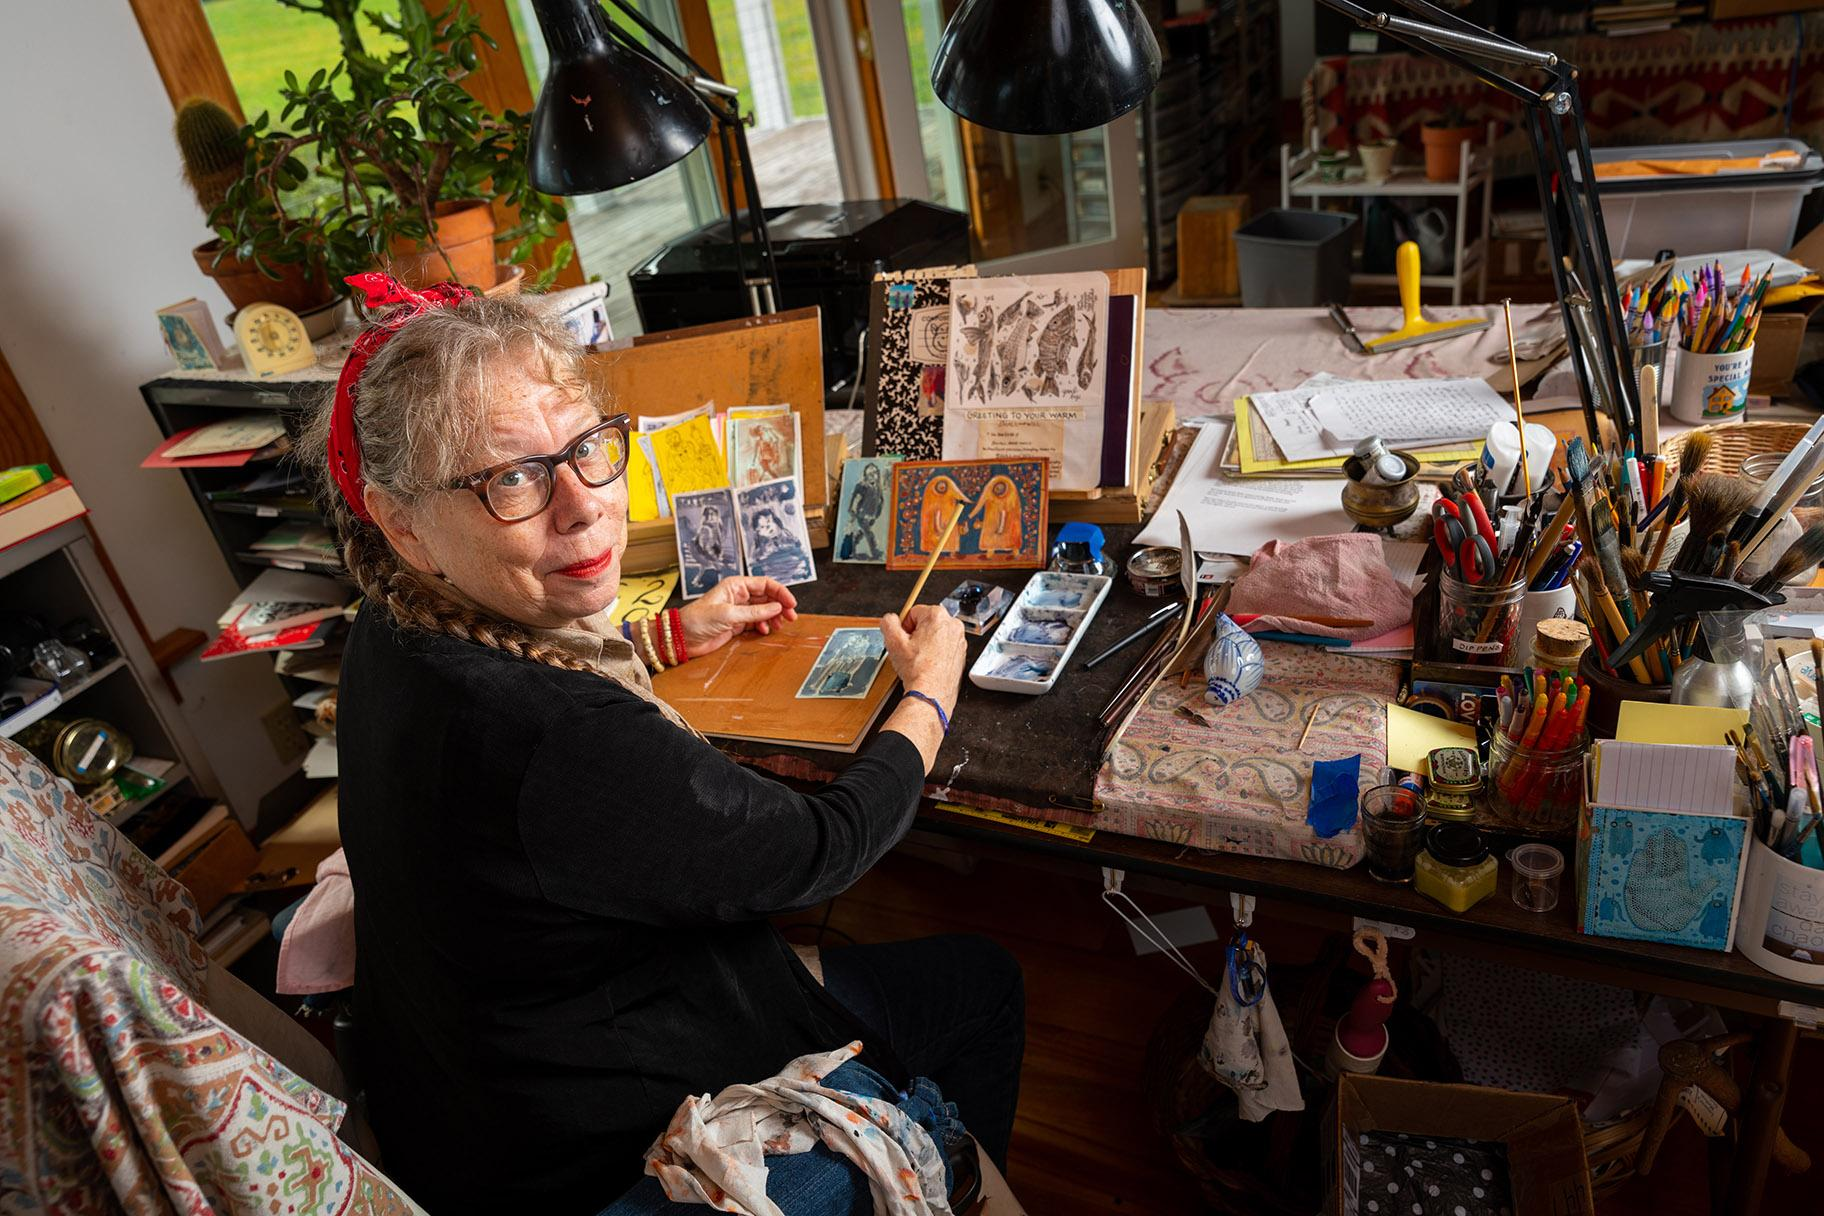 Lynda Barry (Credit: John D. & Catherine T. MacArthur Foundation)